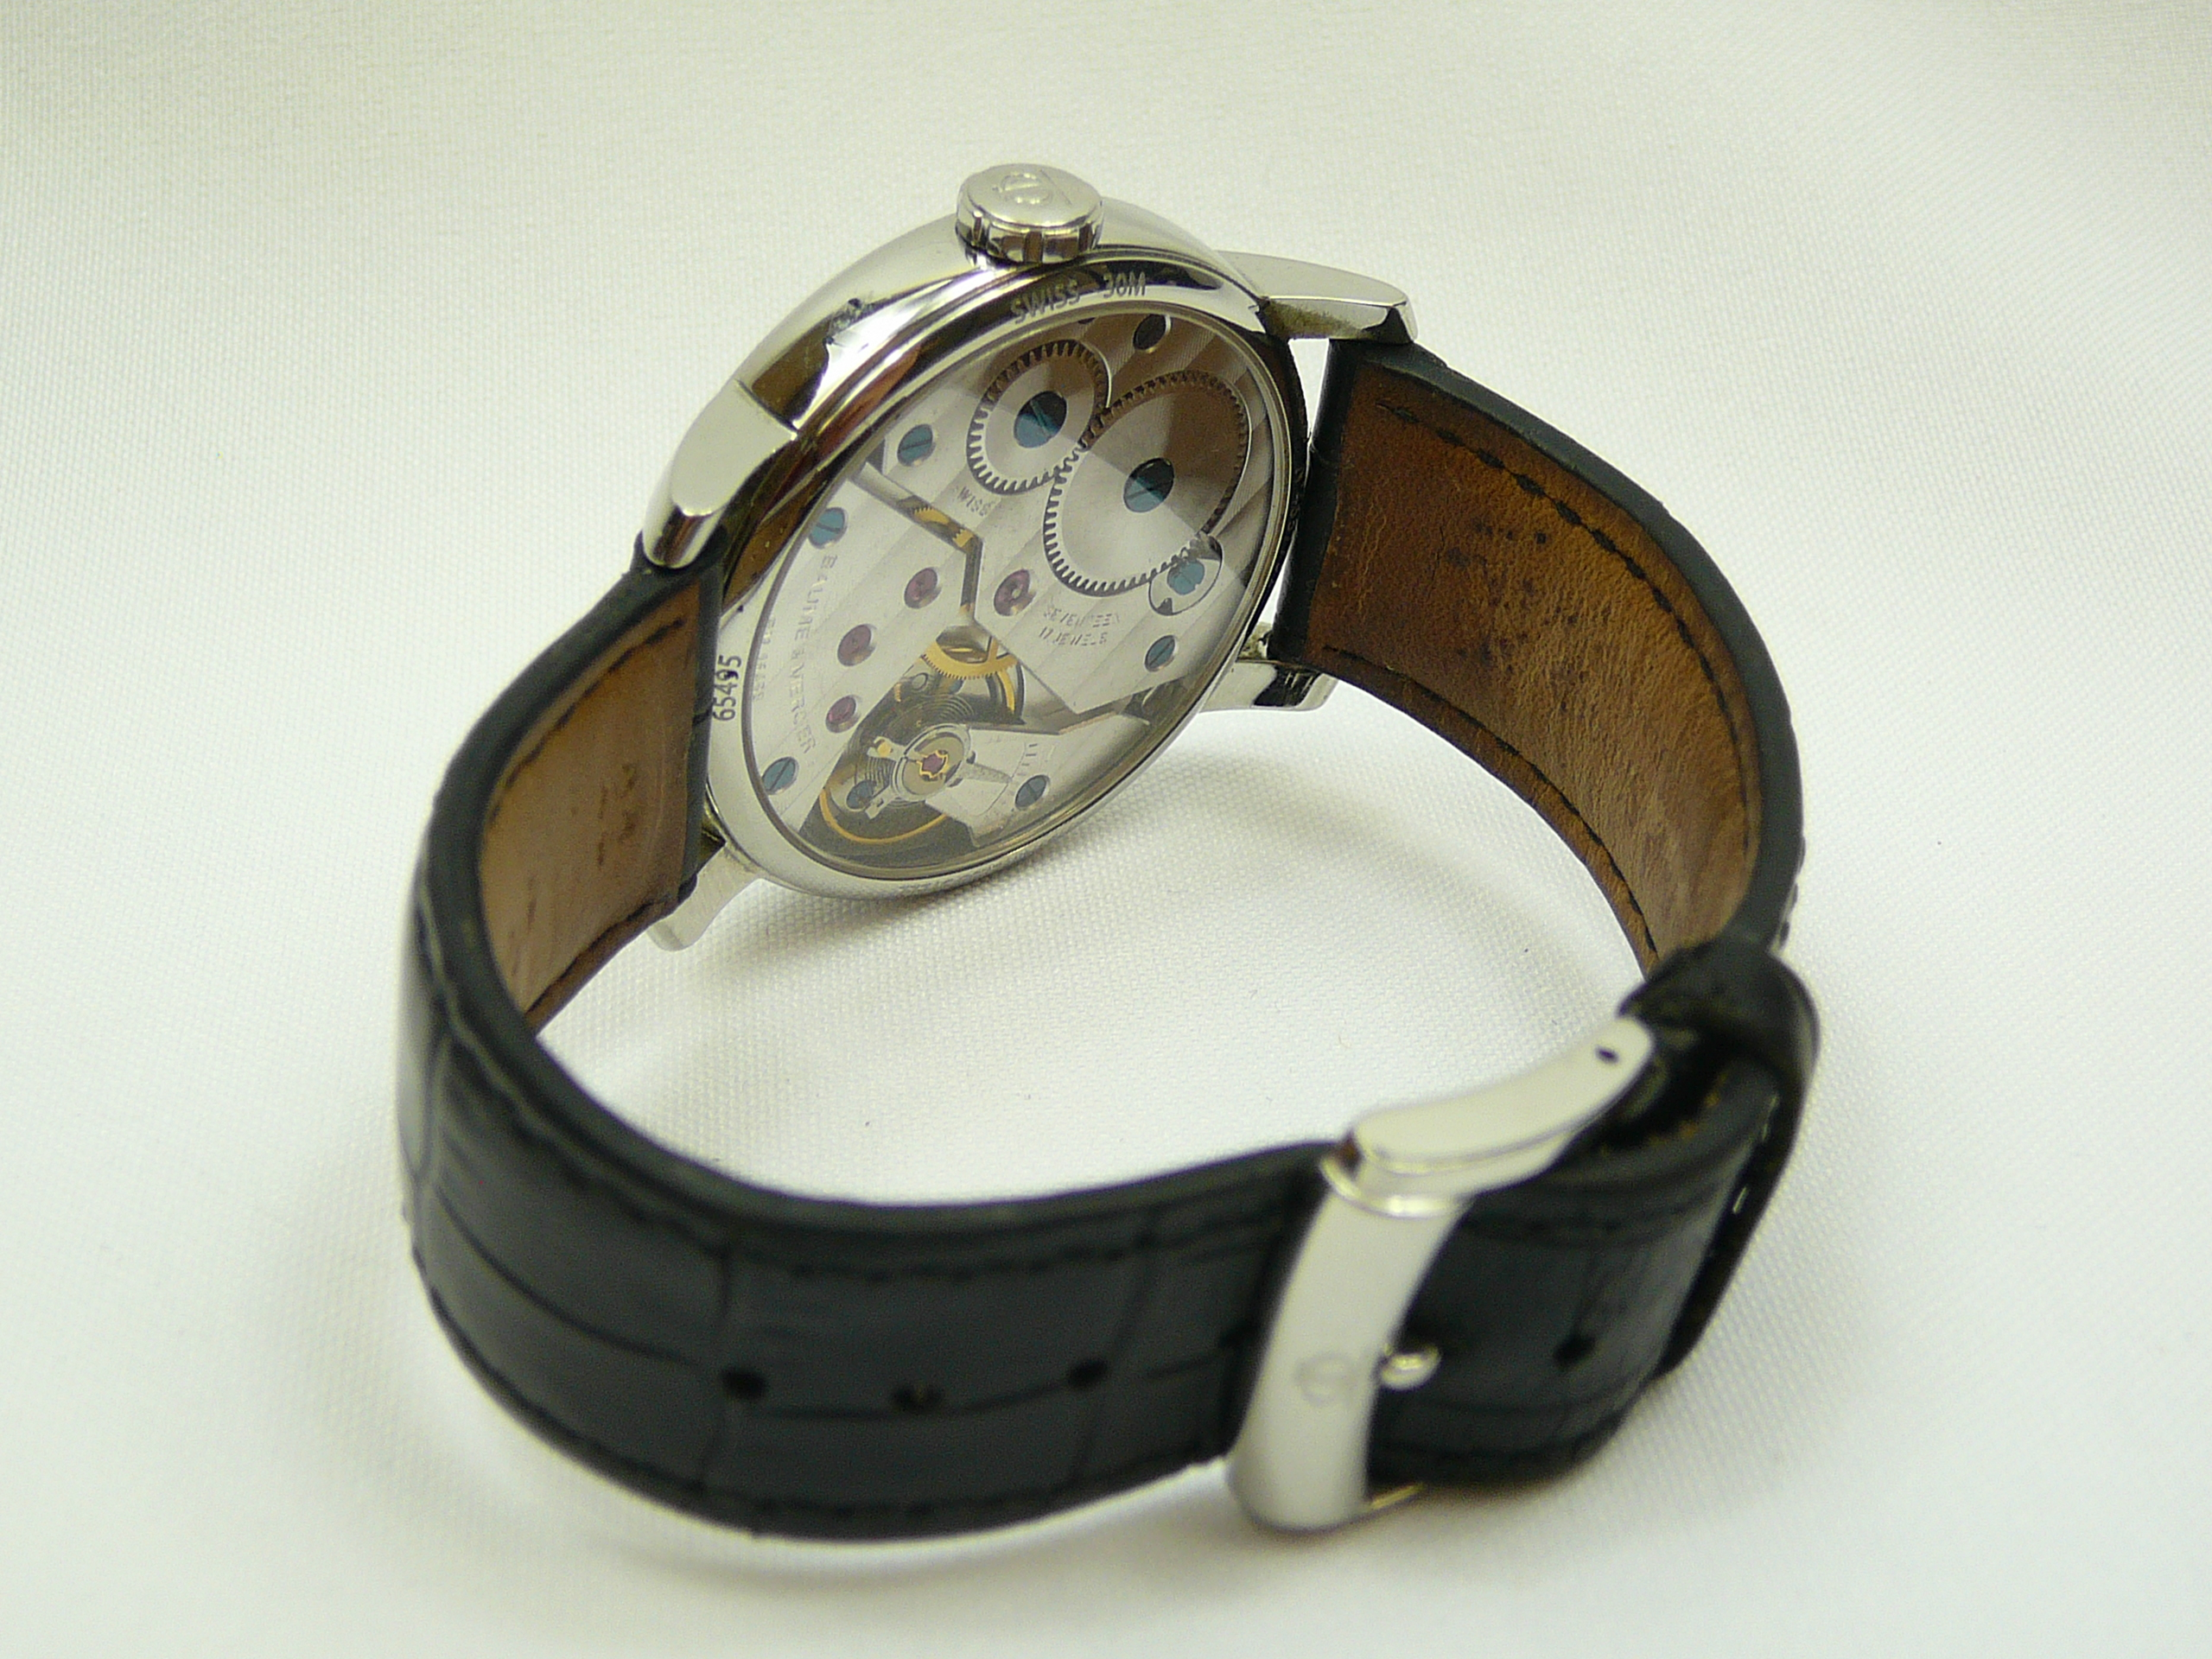 Gents Baume and Mercier Wrist Watch - Image 4 of 4